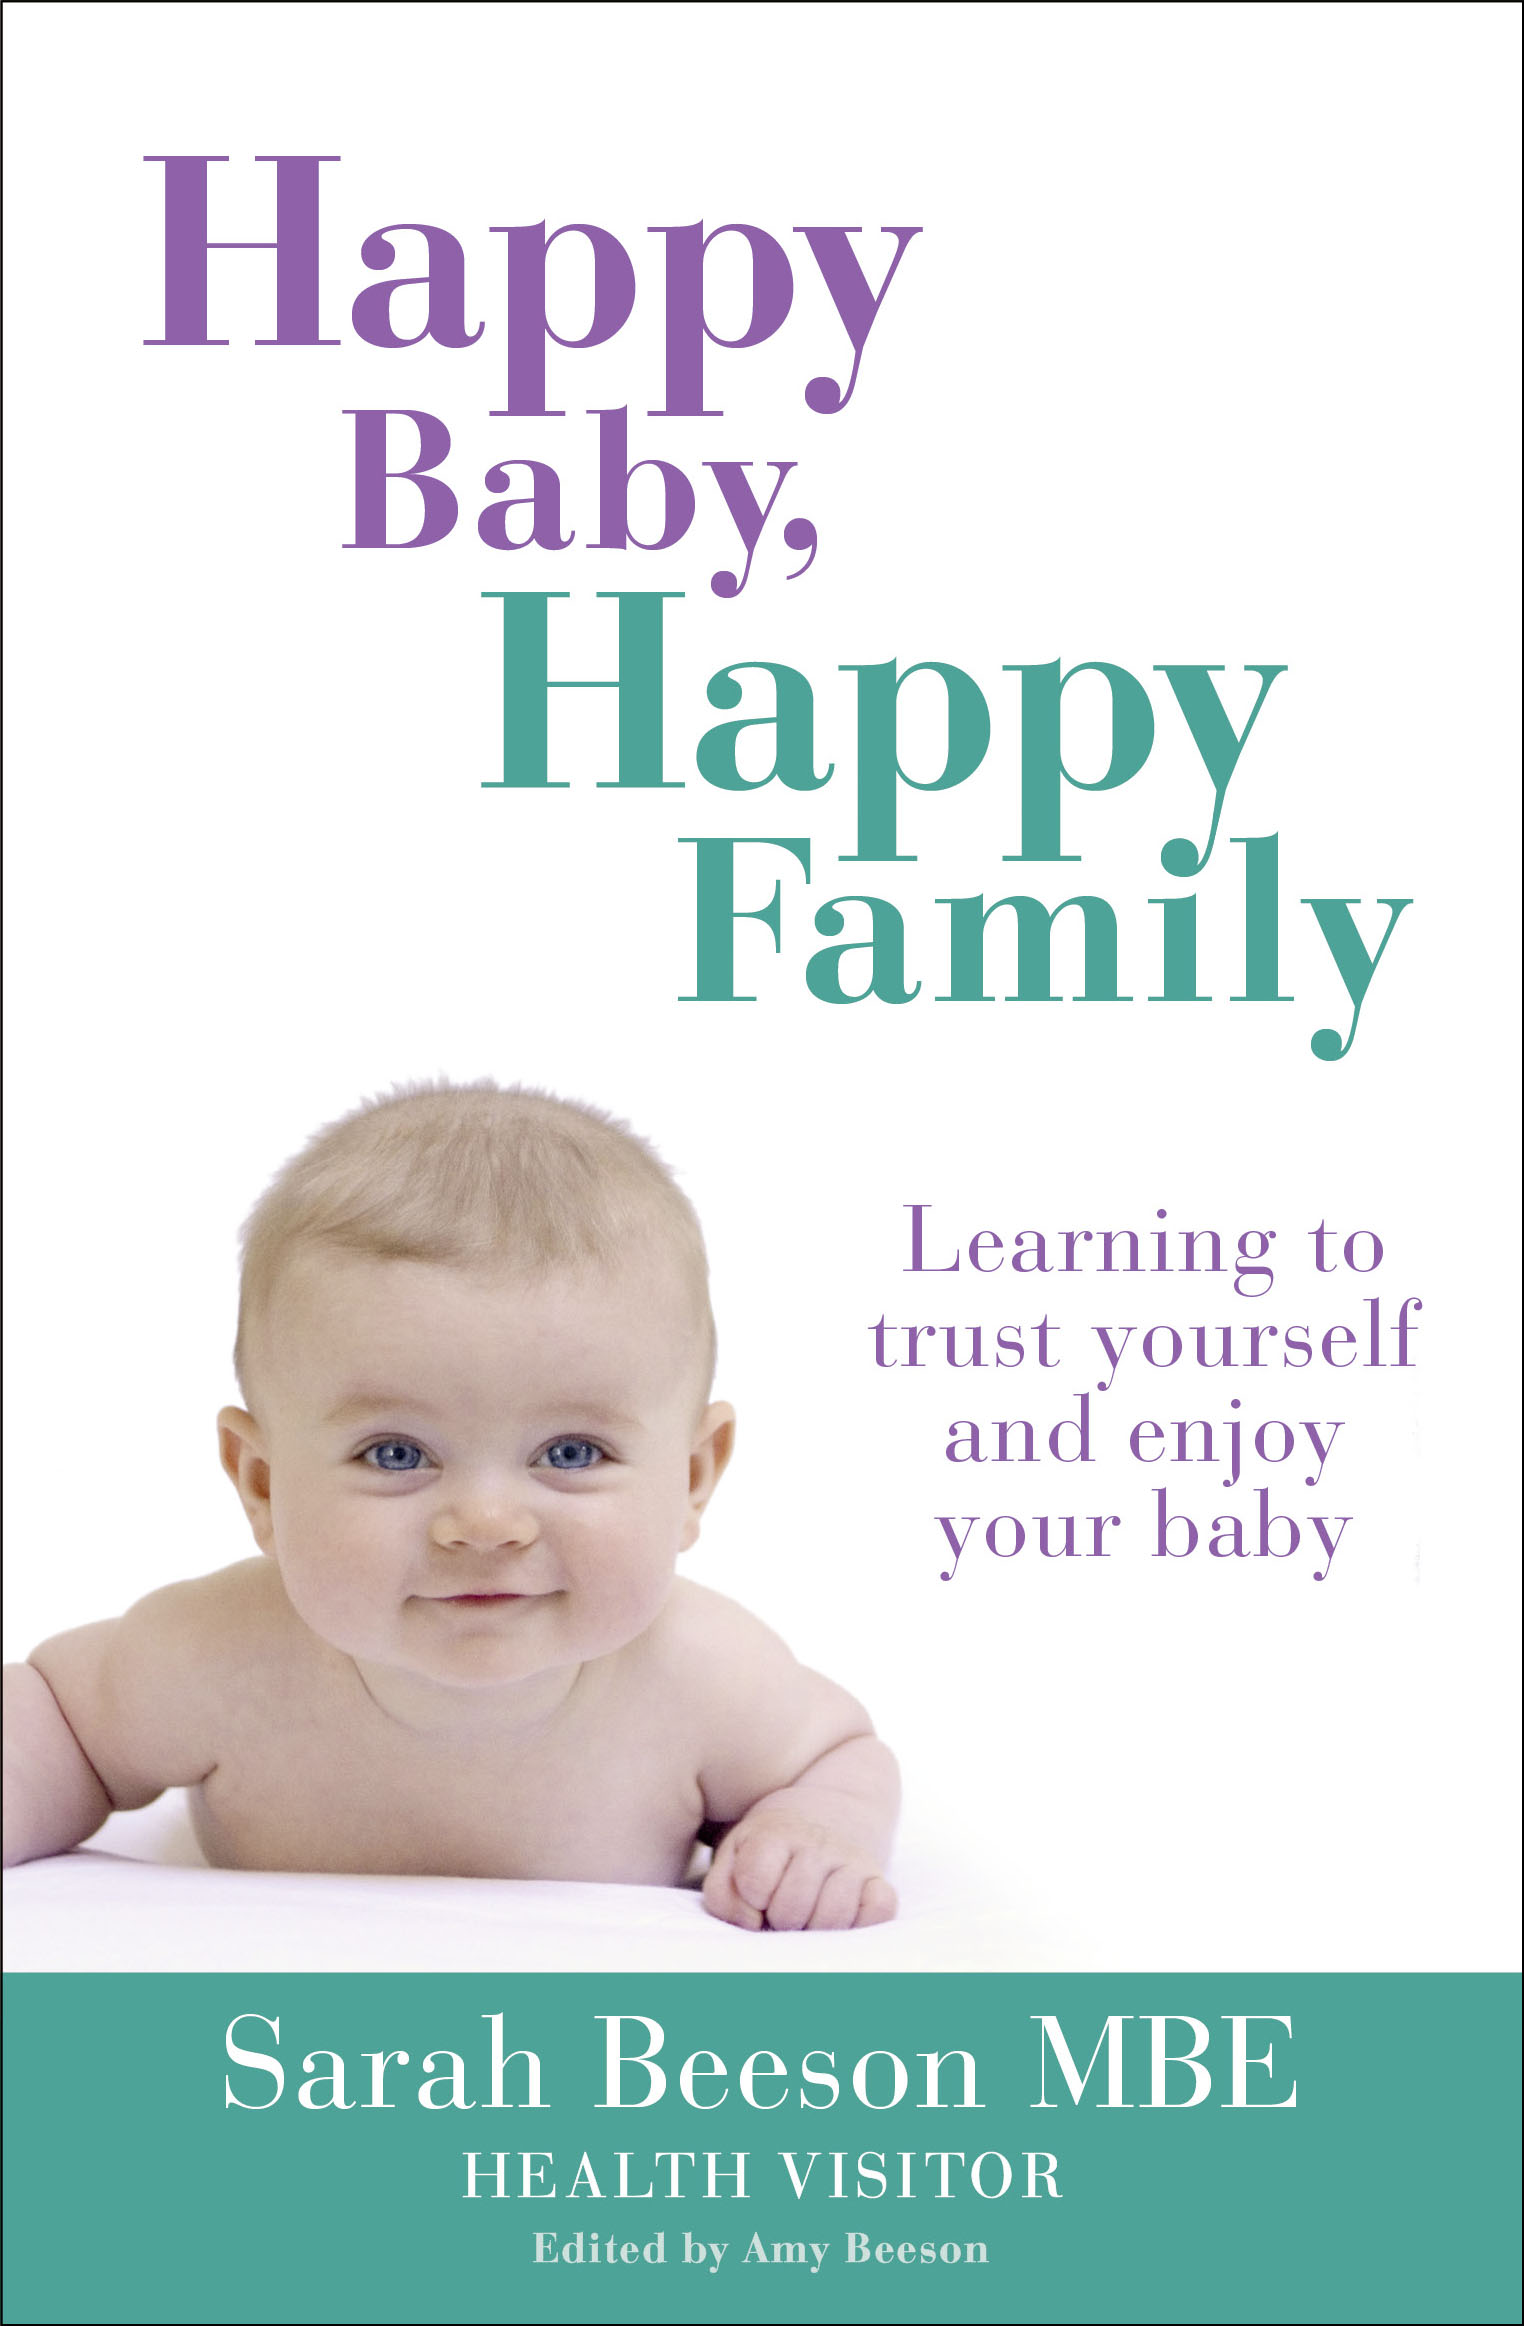 FINAL Happy Baby Happy Family Cover OPTION 4